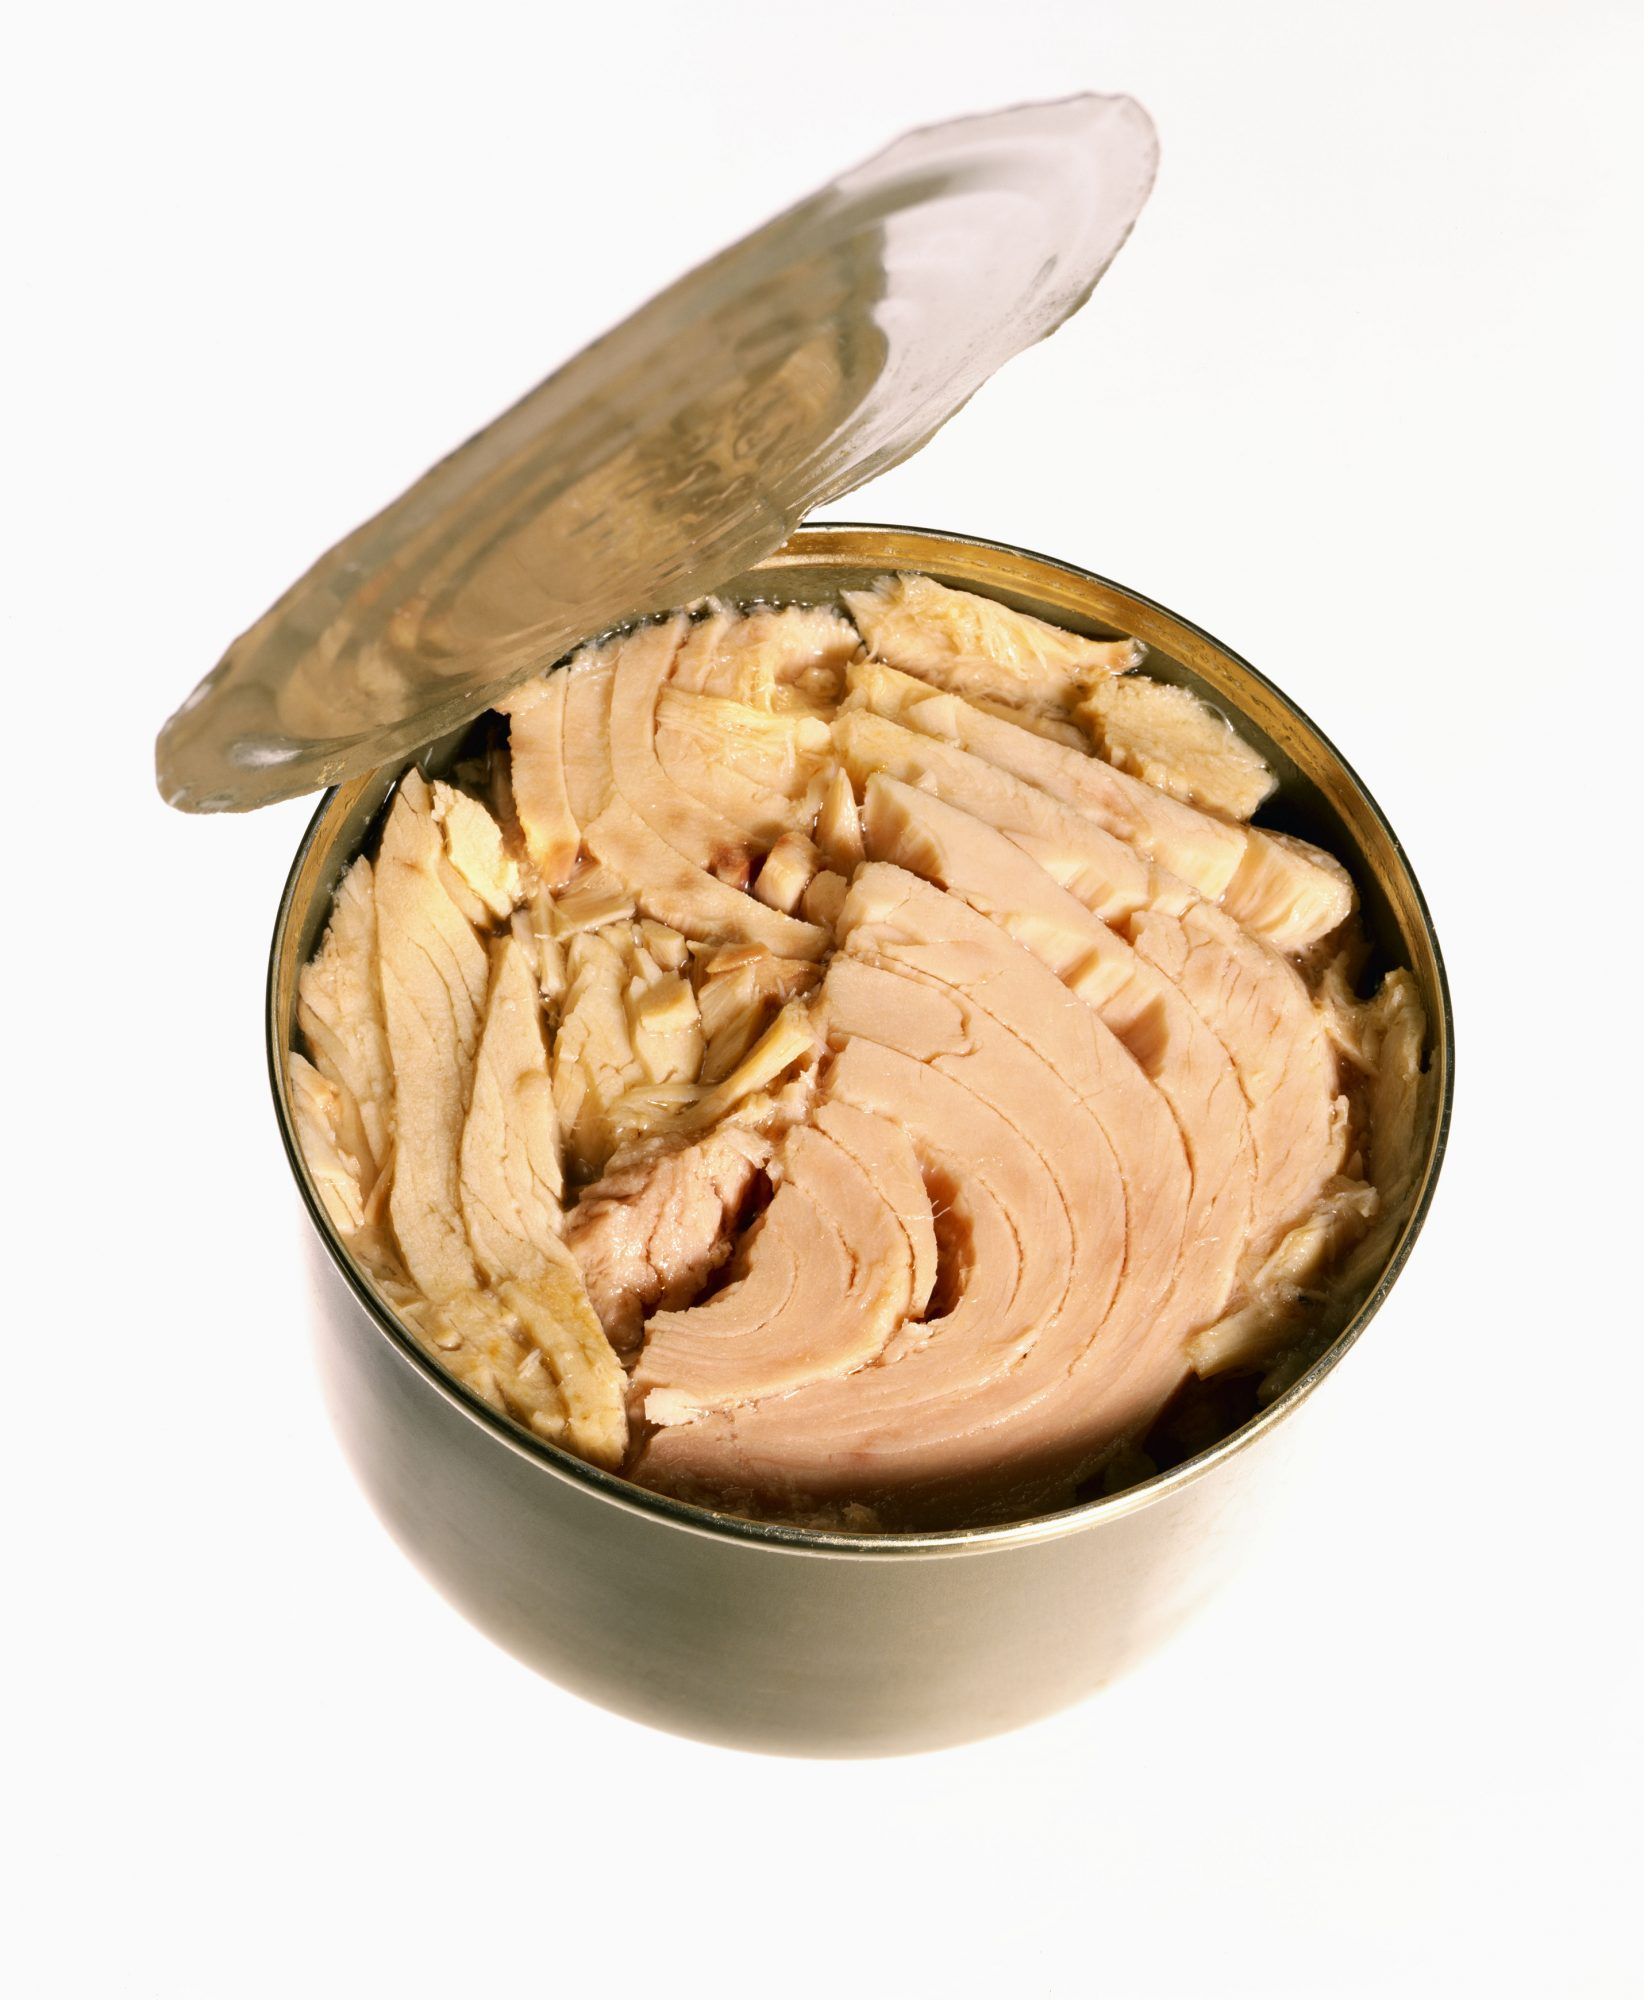 What You Should Know About Buying Canned Tuna